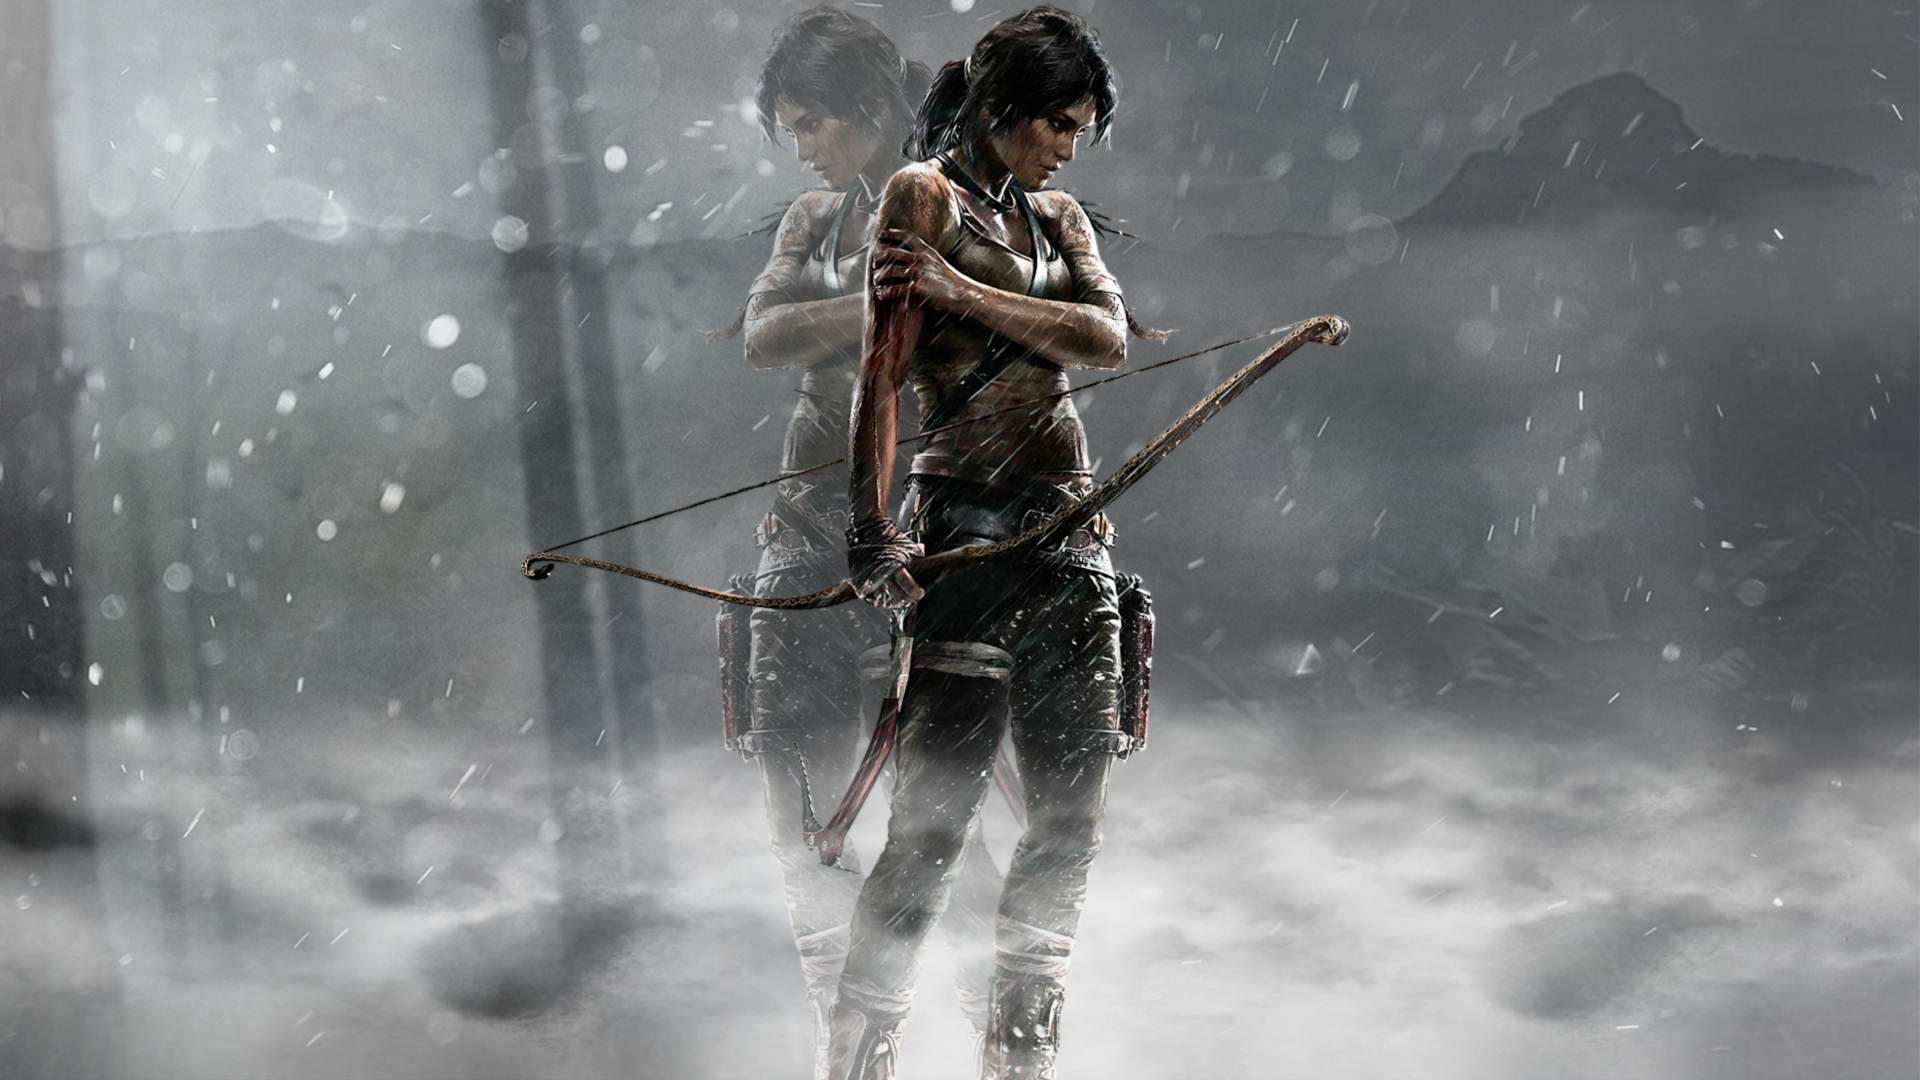 Rise Of The Tomb Raider Hd Wallpaper Background Image